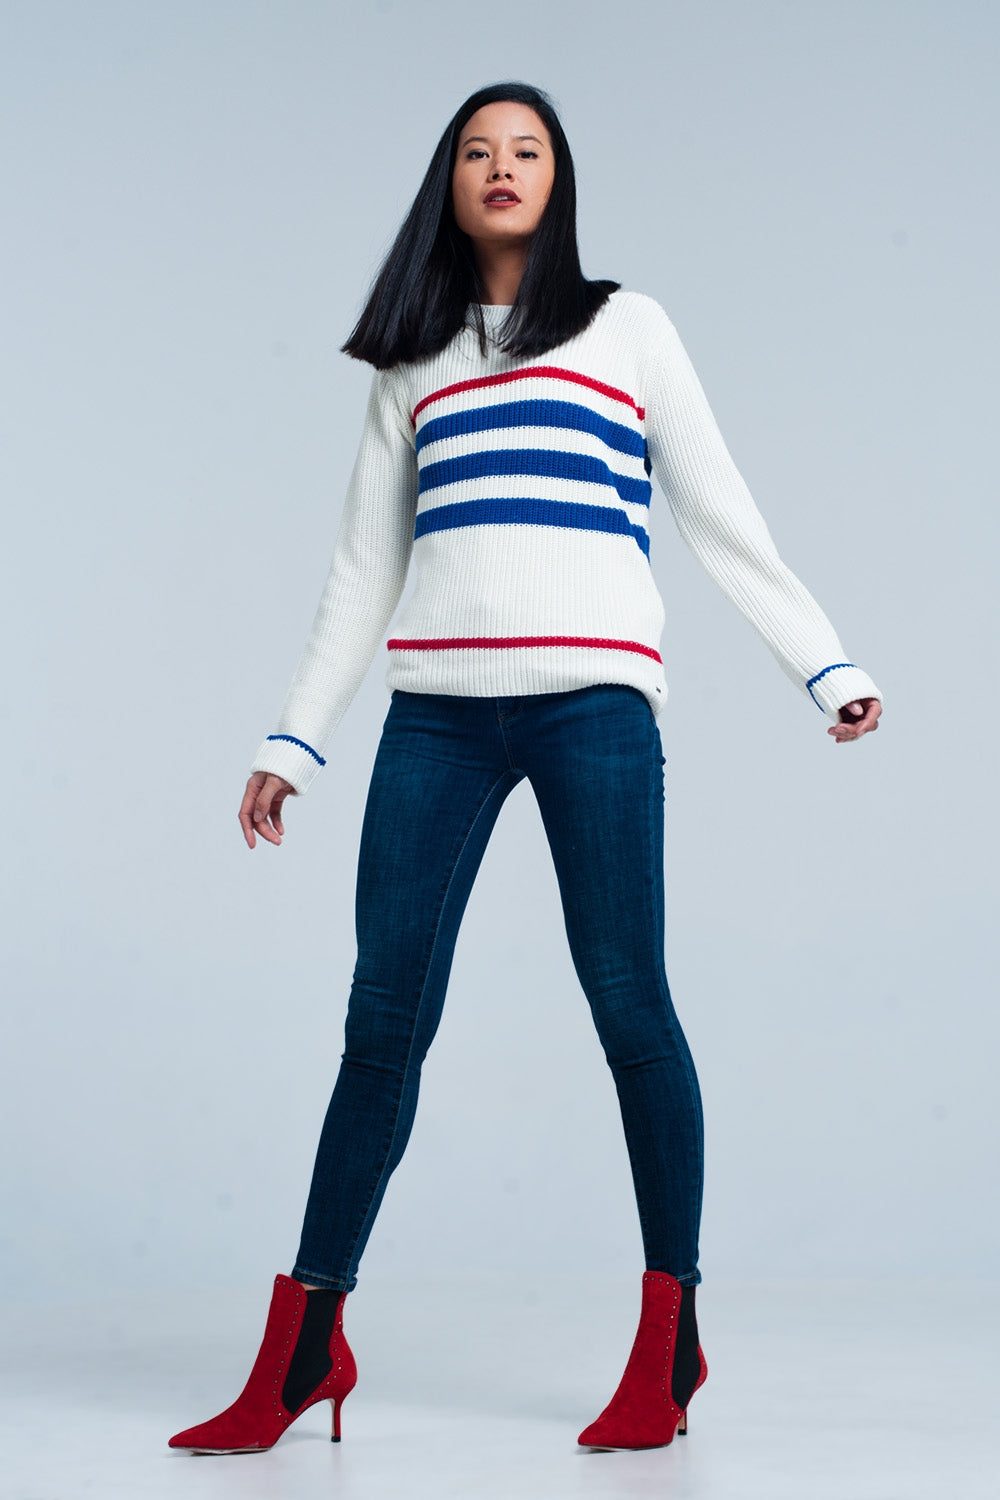 Beige Rib Stitch Sweater With Stripes-Women - Apparel - Sweaters - Pull Over-Product Details Knitted jumper with a rib stitch texture and blue and red vertical stripes. The pullover is made of hundred percent comfort and has a round crew neck and long permanently folded sleeves.-Keyomi-Sook